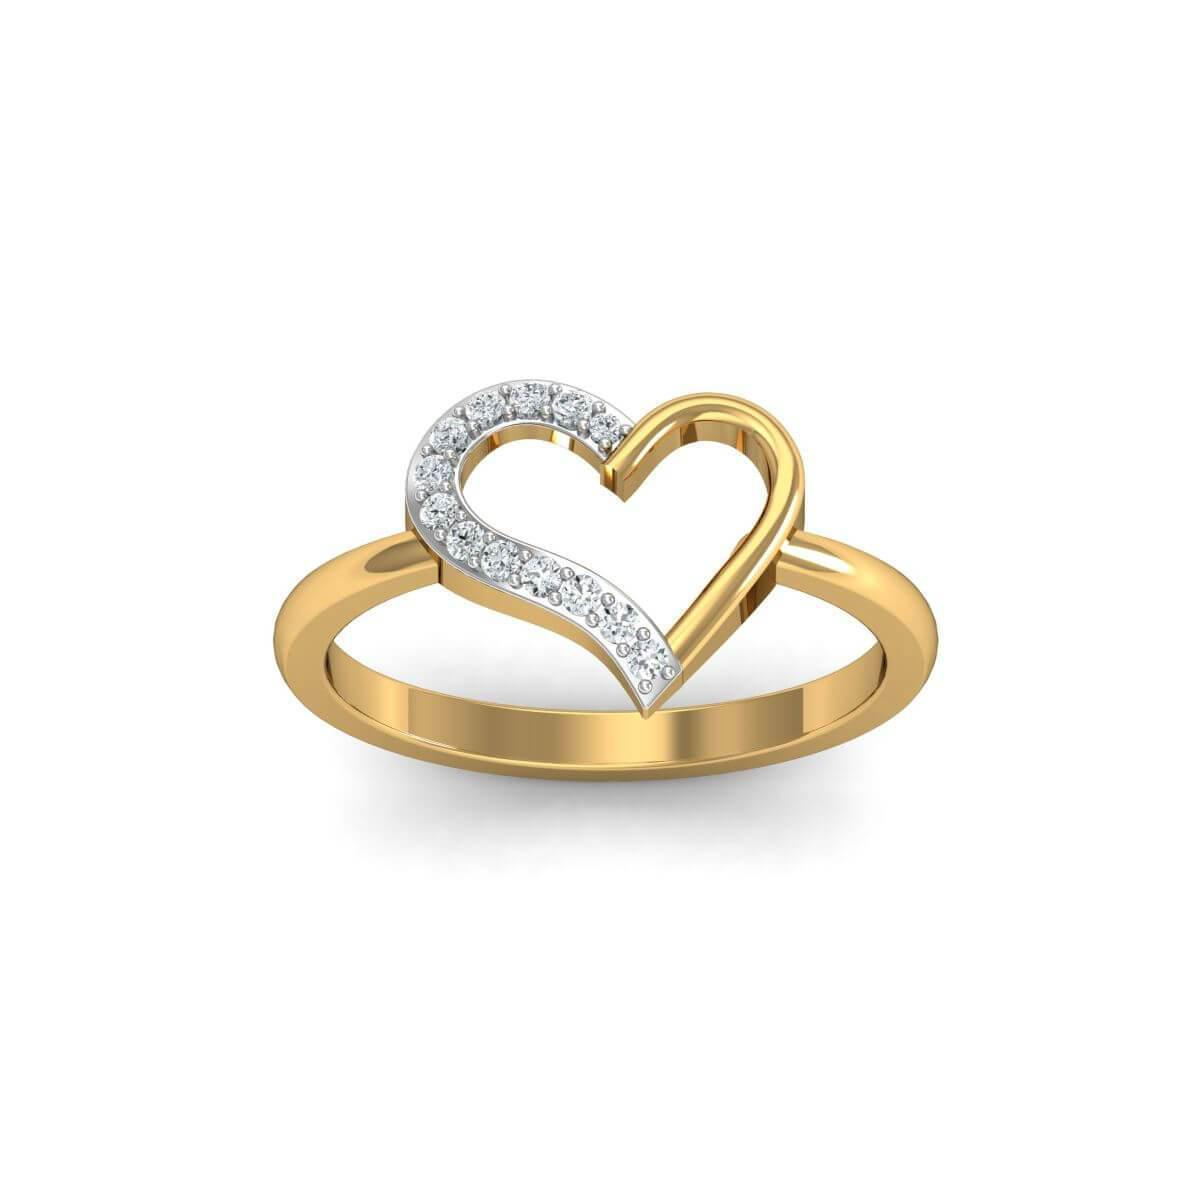 Diamoire Jewels 18kt Yellow Gold Pave 0.24ct Diamond Infinity Ring - UK G 1/4 - US 3 1/2 - EU 45 3/4 ClH5wWUF